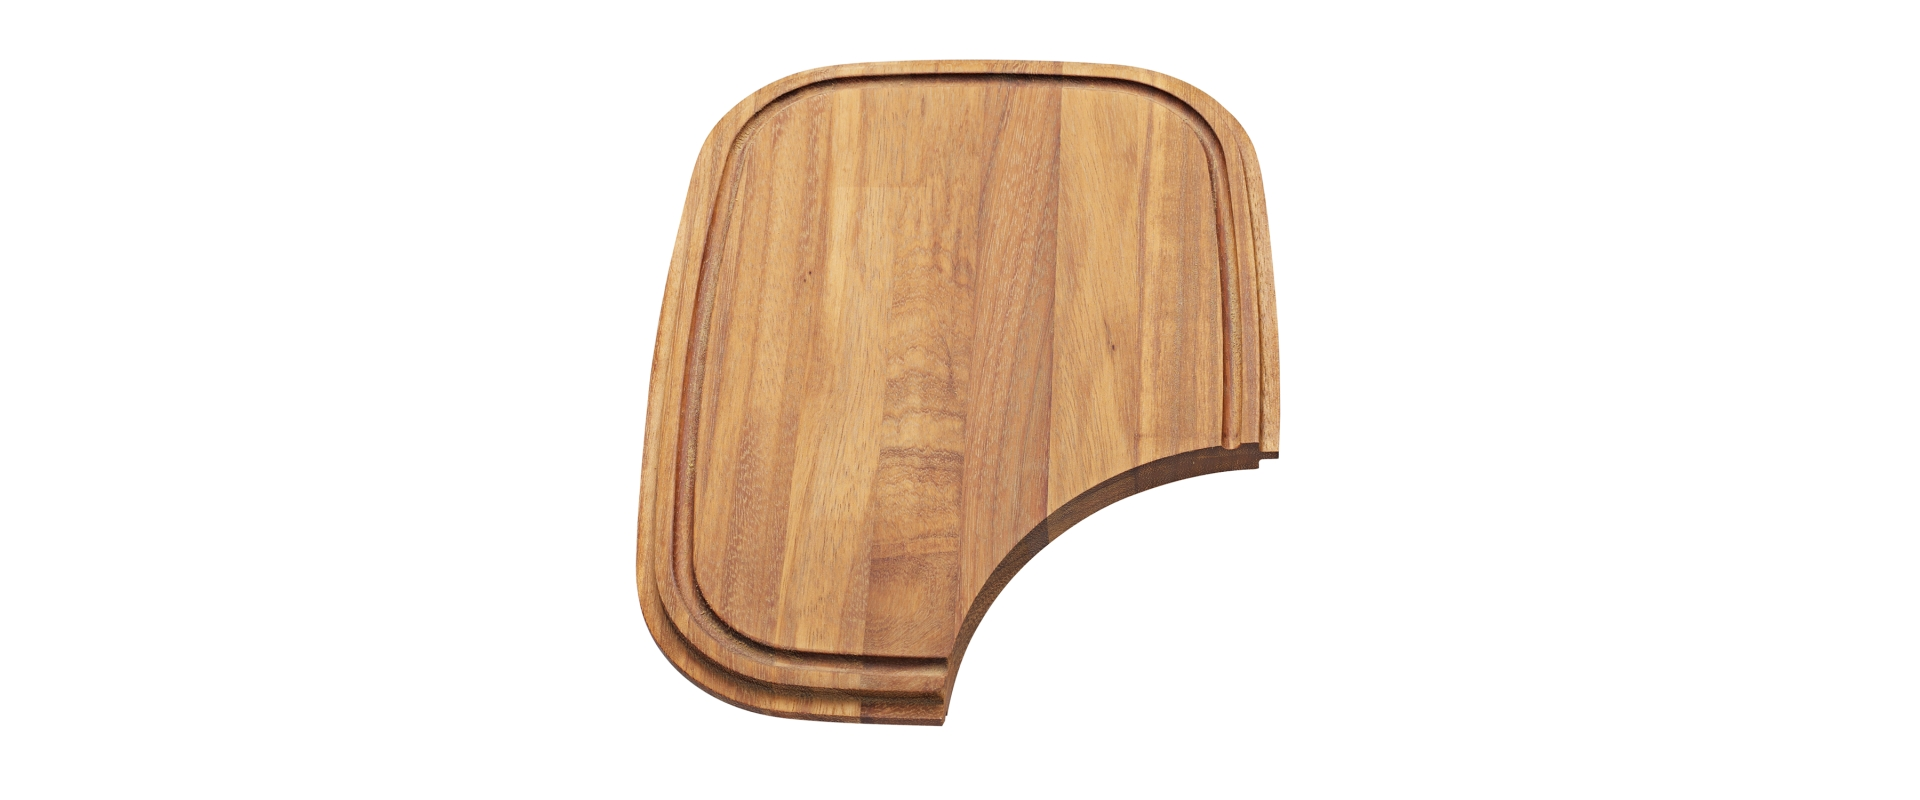 Chopping board for sink bowl 293x400 mm